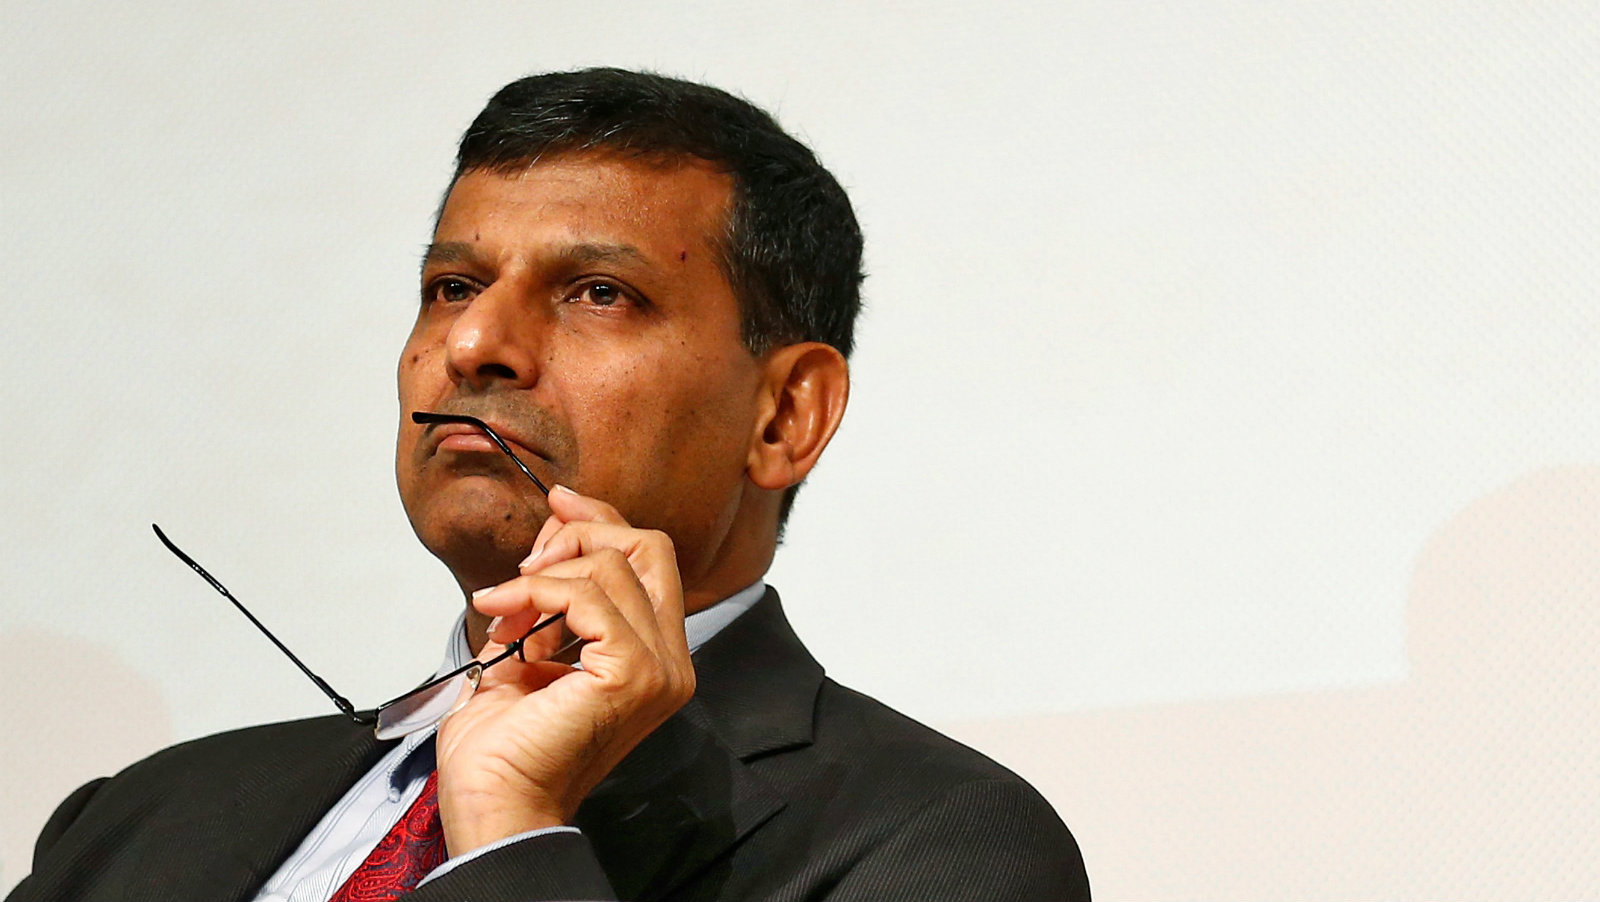 Reserve Bank of India (RBI) Governor Raghuram Rajan looks on before delivering a lecture at Tata Institute of Fundamental Research (TIFR) in Mumbai, India, June 20, 2016.